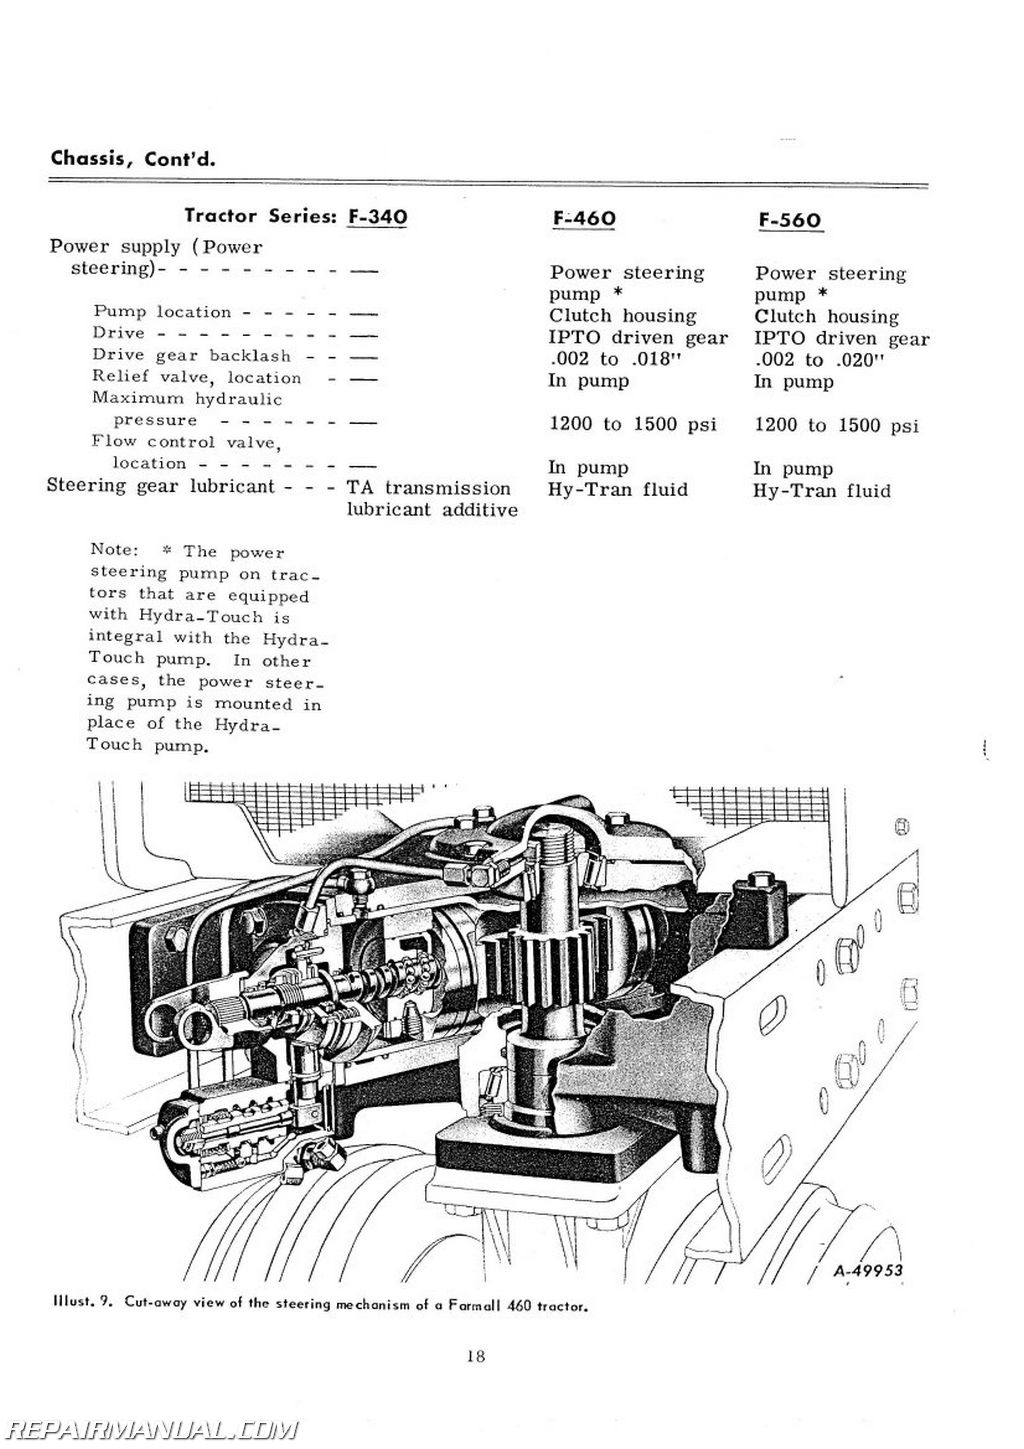 hight resolution of farmall 460 transmission diagram schematics wiring diagrams u2022 rh parntesis co farmall 460 diesel farmall 460